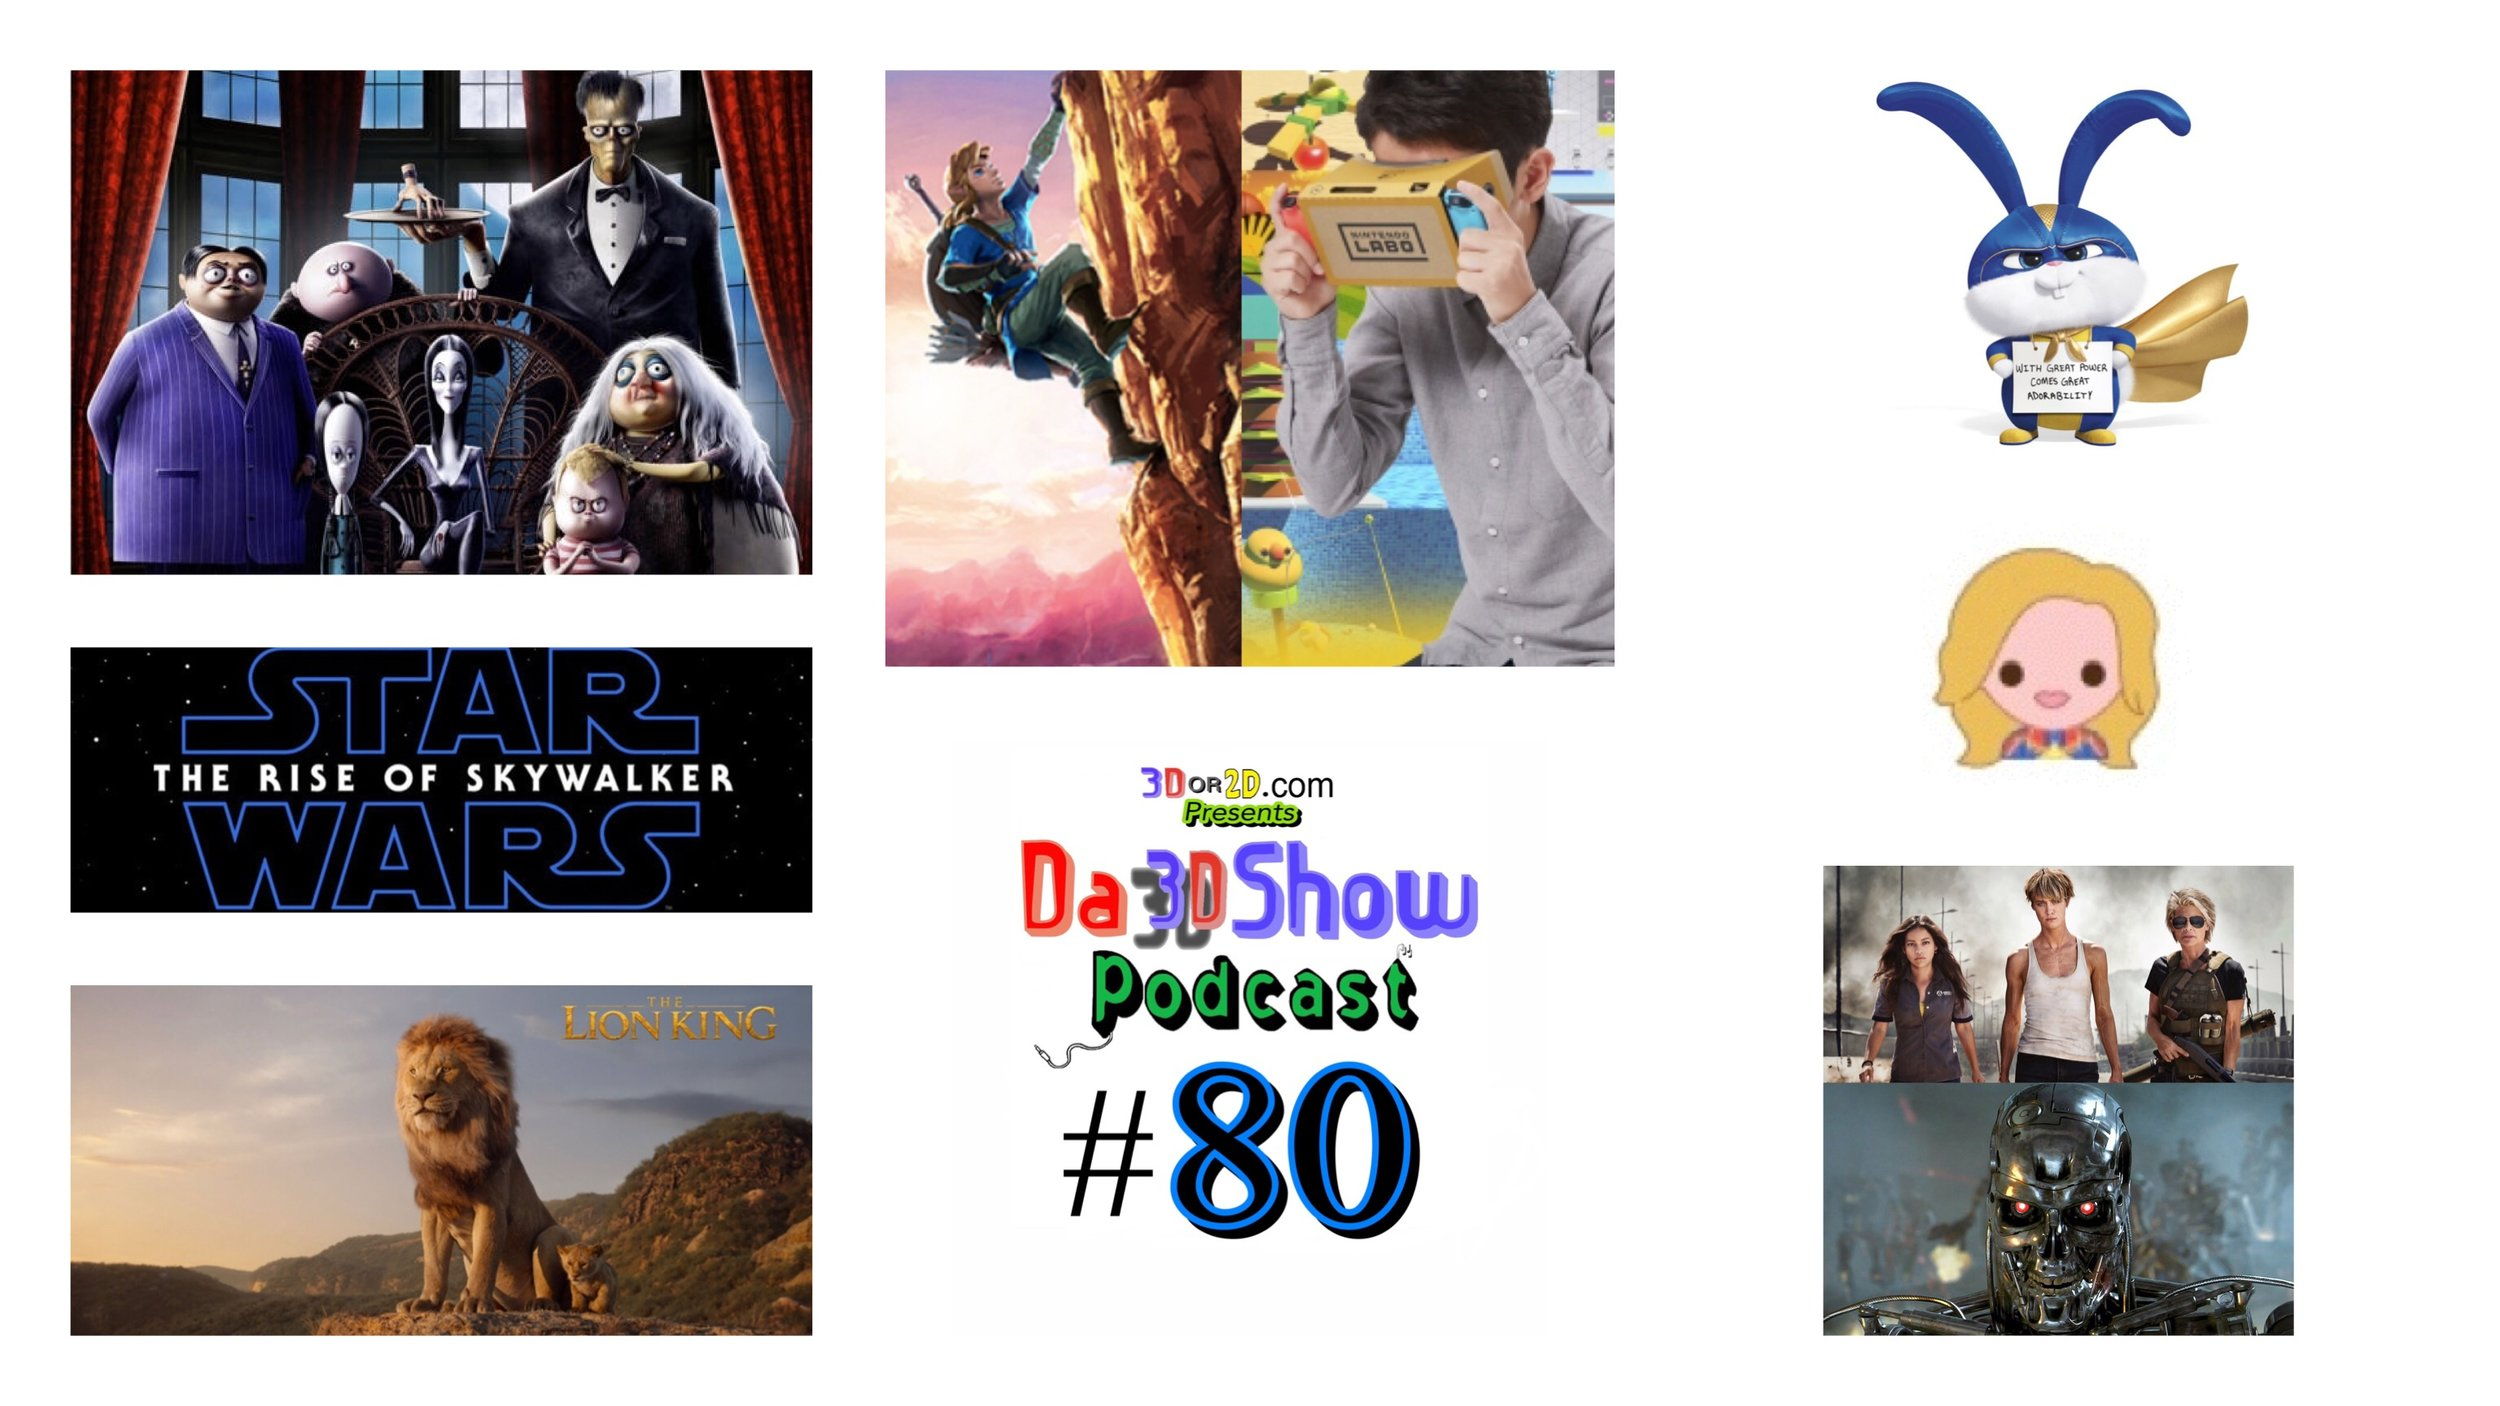 da-3D-show-80-podcast-art.jpeg